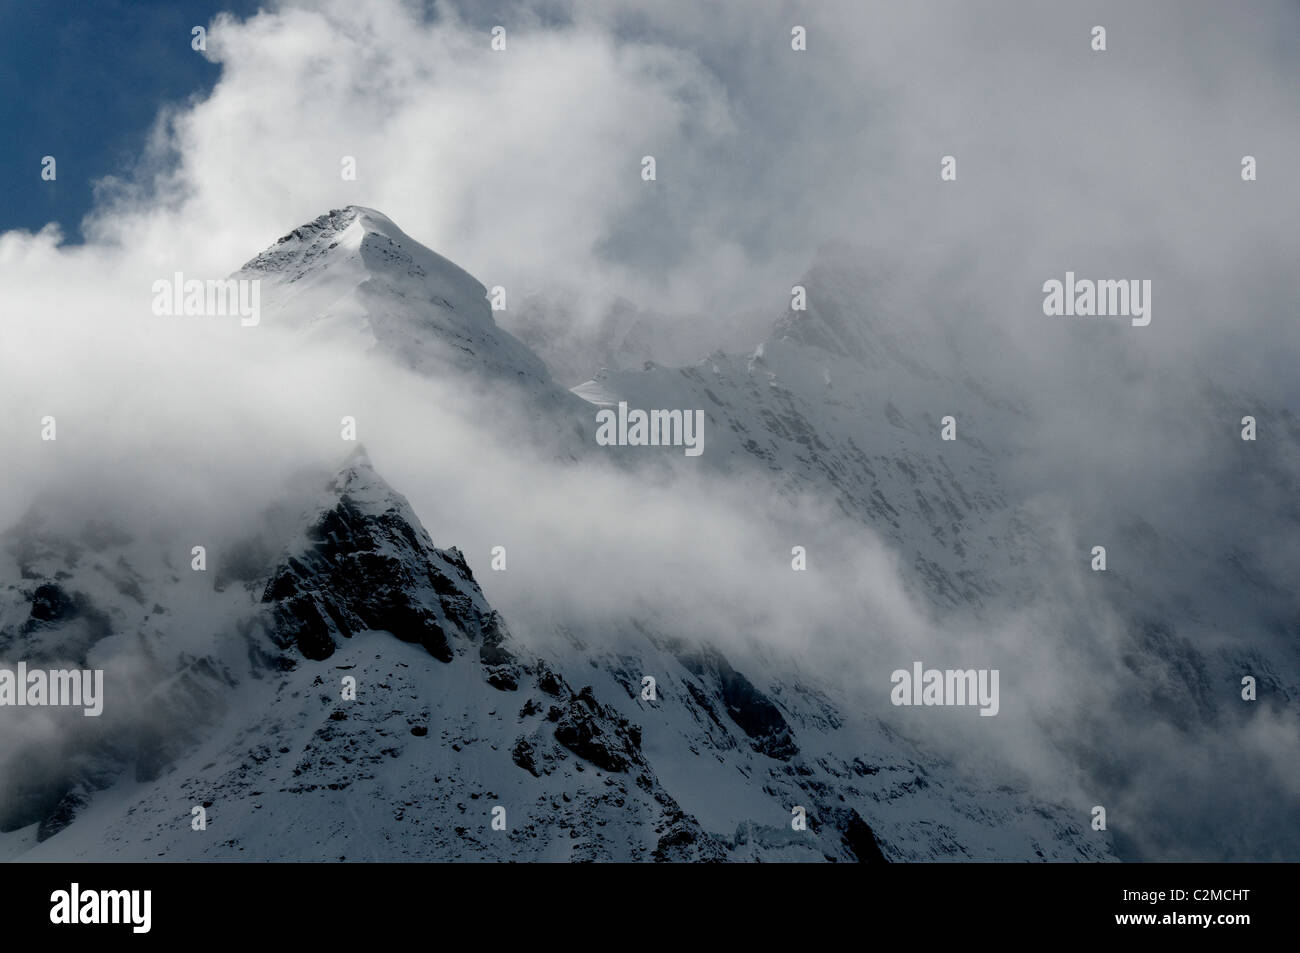 Grand Combin appearing from clearing storm clouds in the Central Valais part of the Swiss Alps. - Stock Image